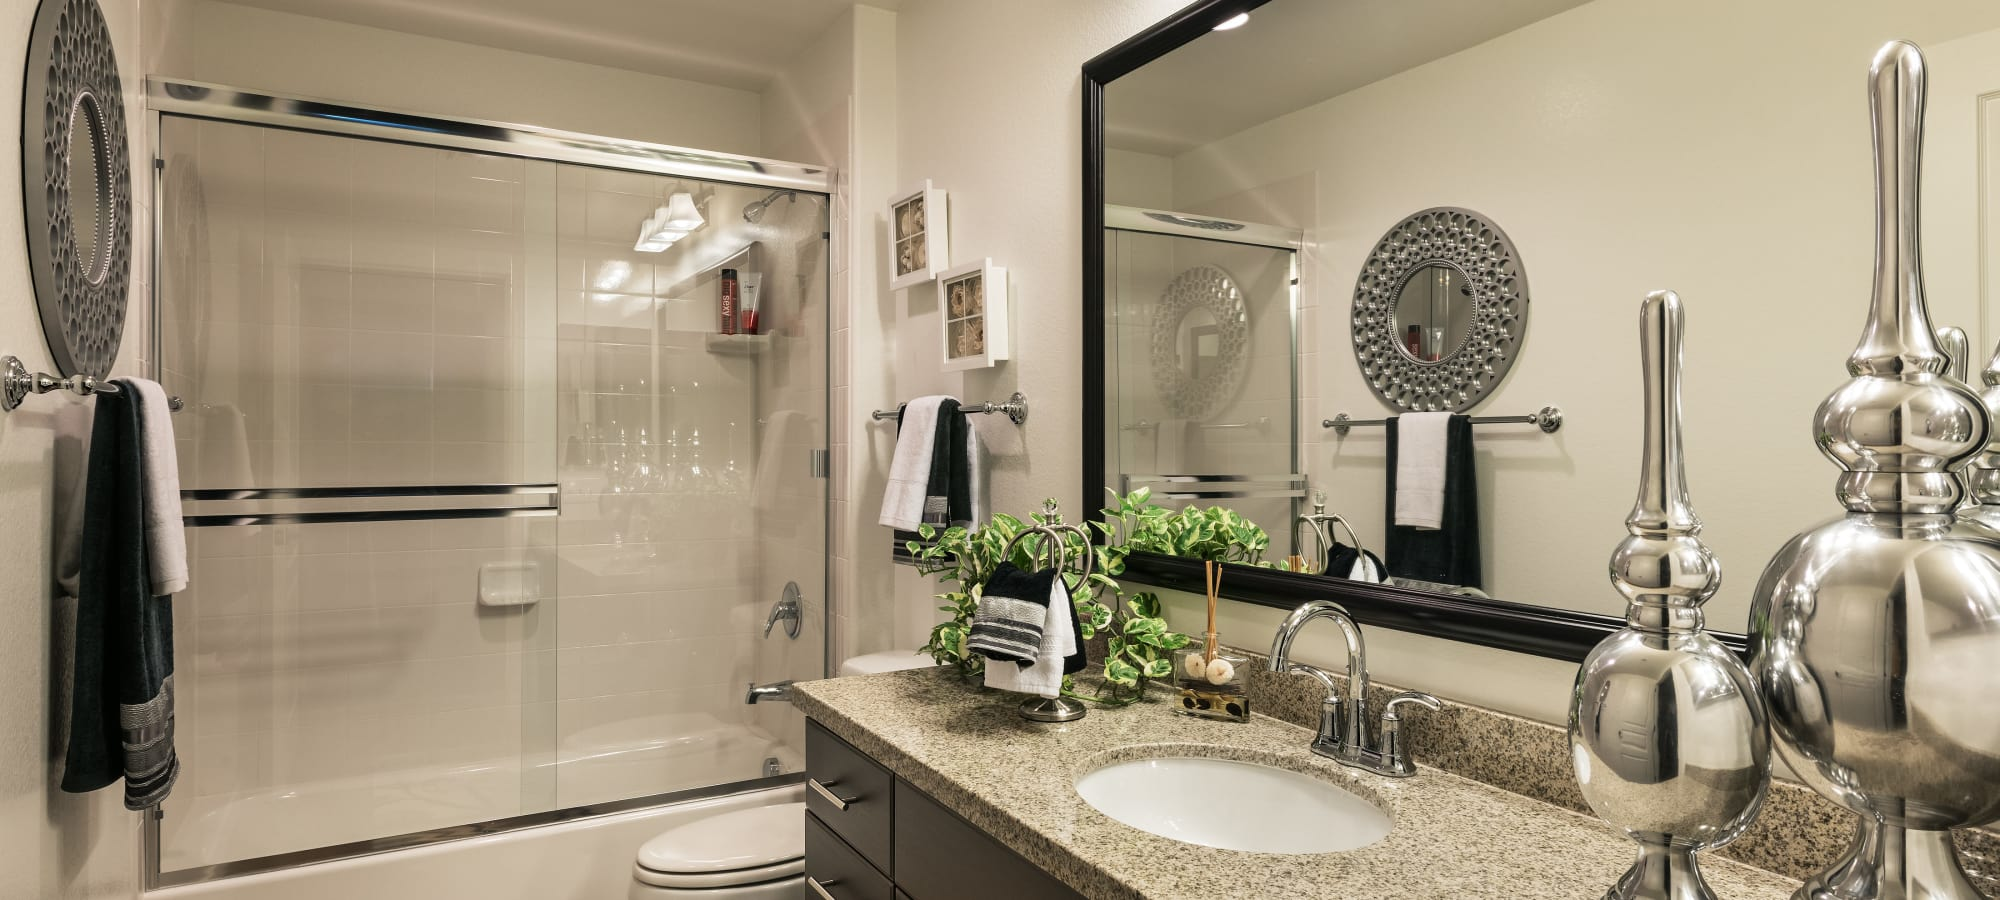 Luxury bathroom with granite counter tops at San Posada in Mesa, Arizona